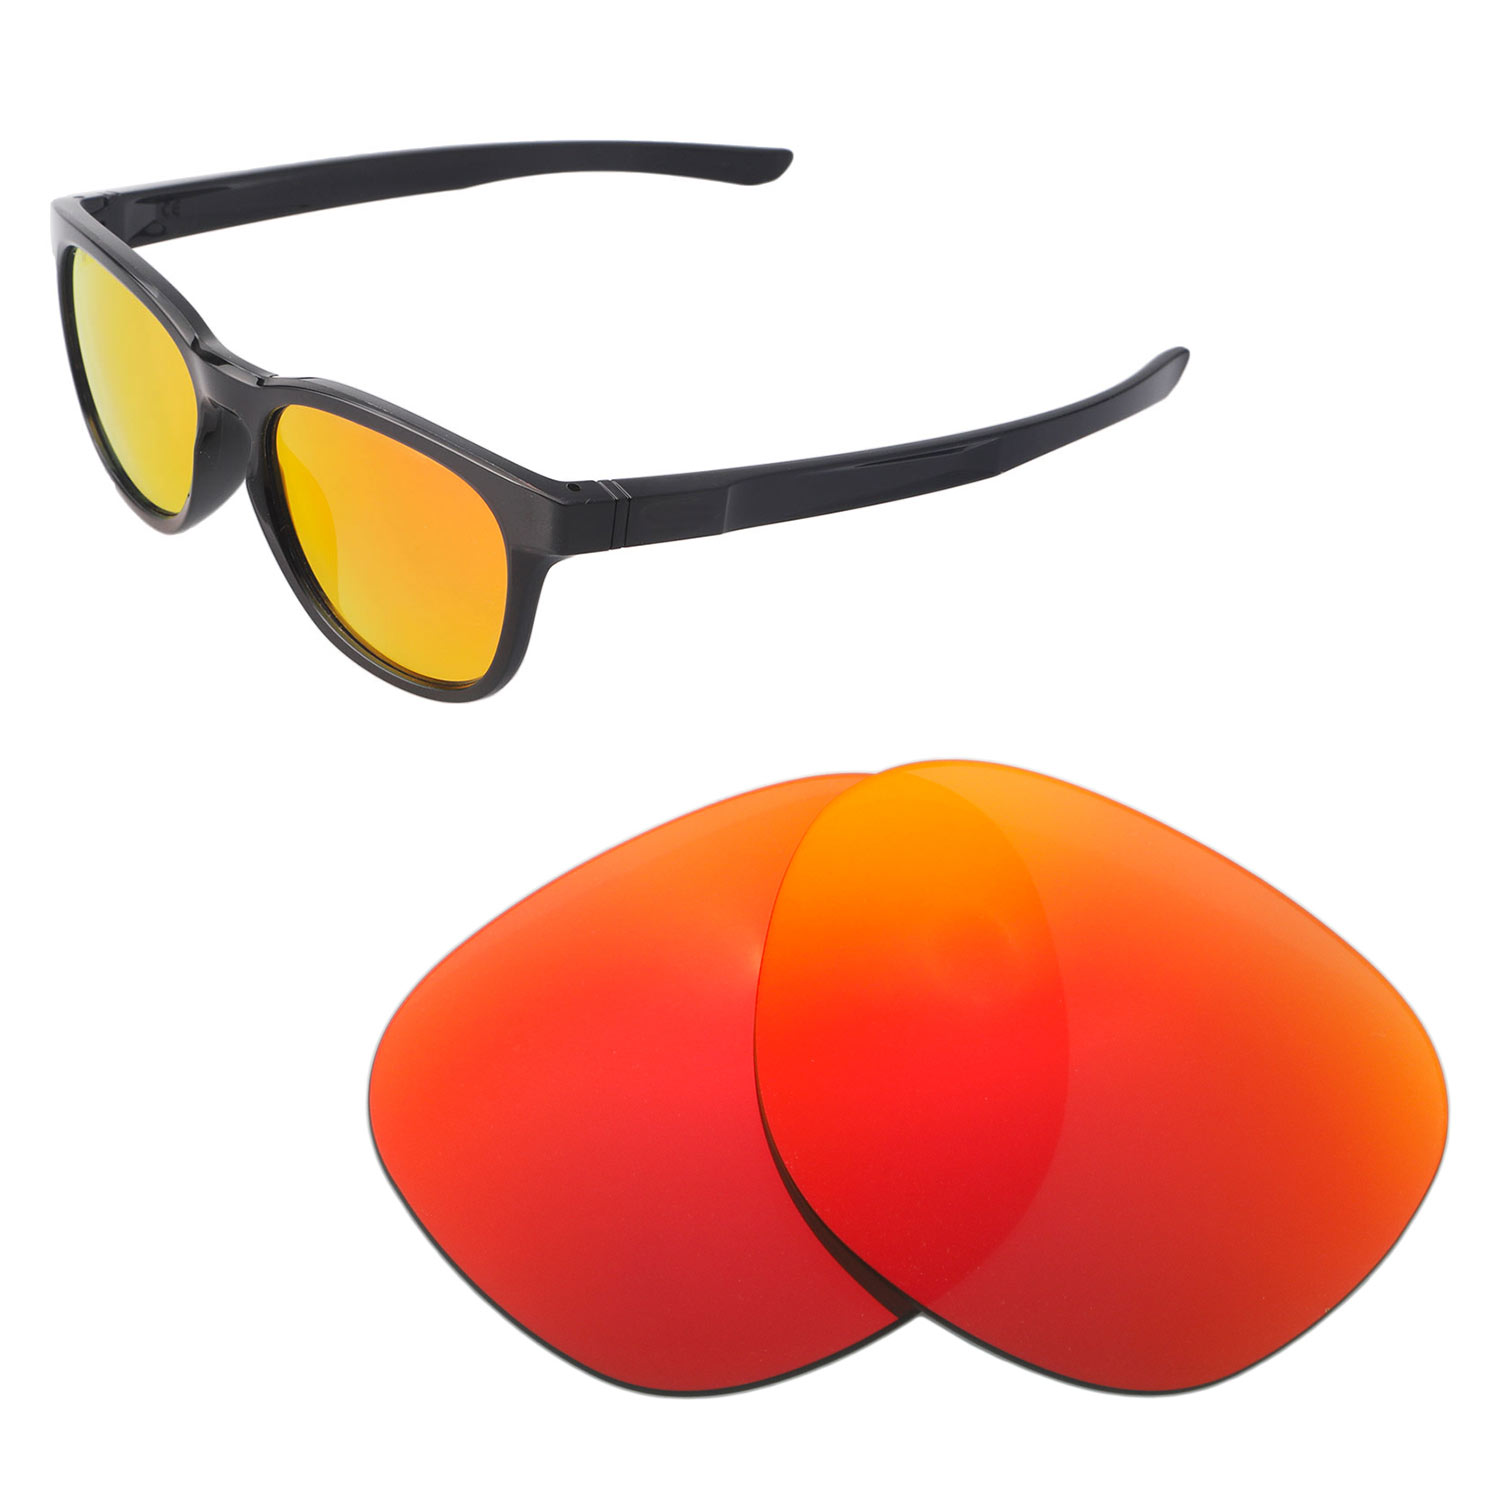 c7efbc428b2 Details about Walleva Polarized Fire Red Replacement Lenses For Oakley  Stringer Sunglasses